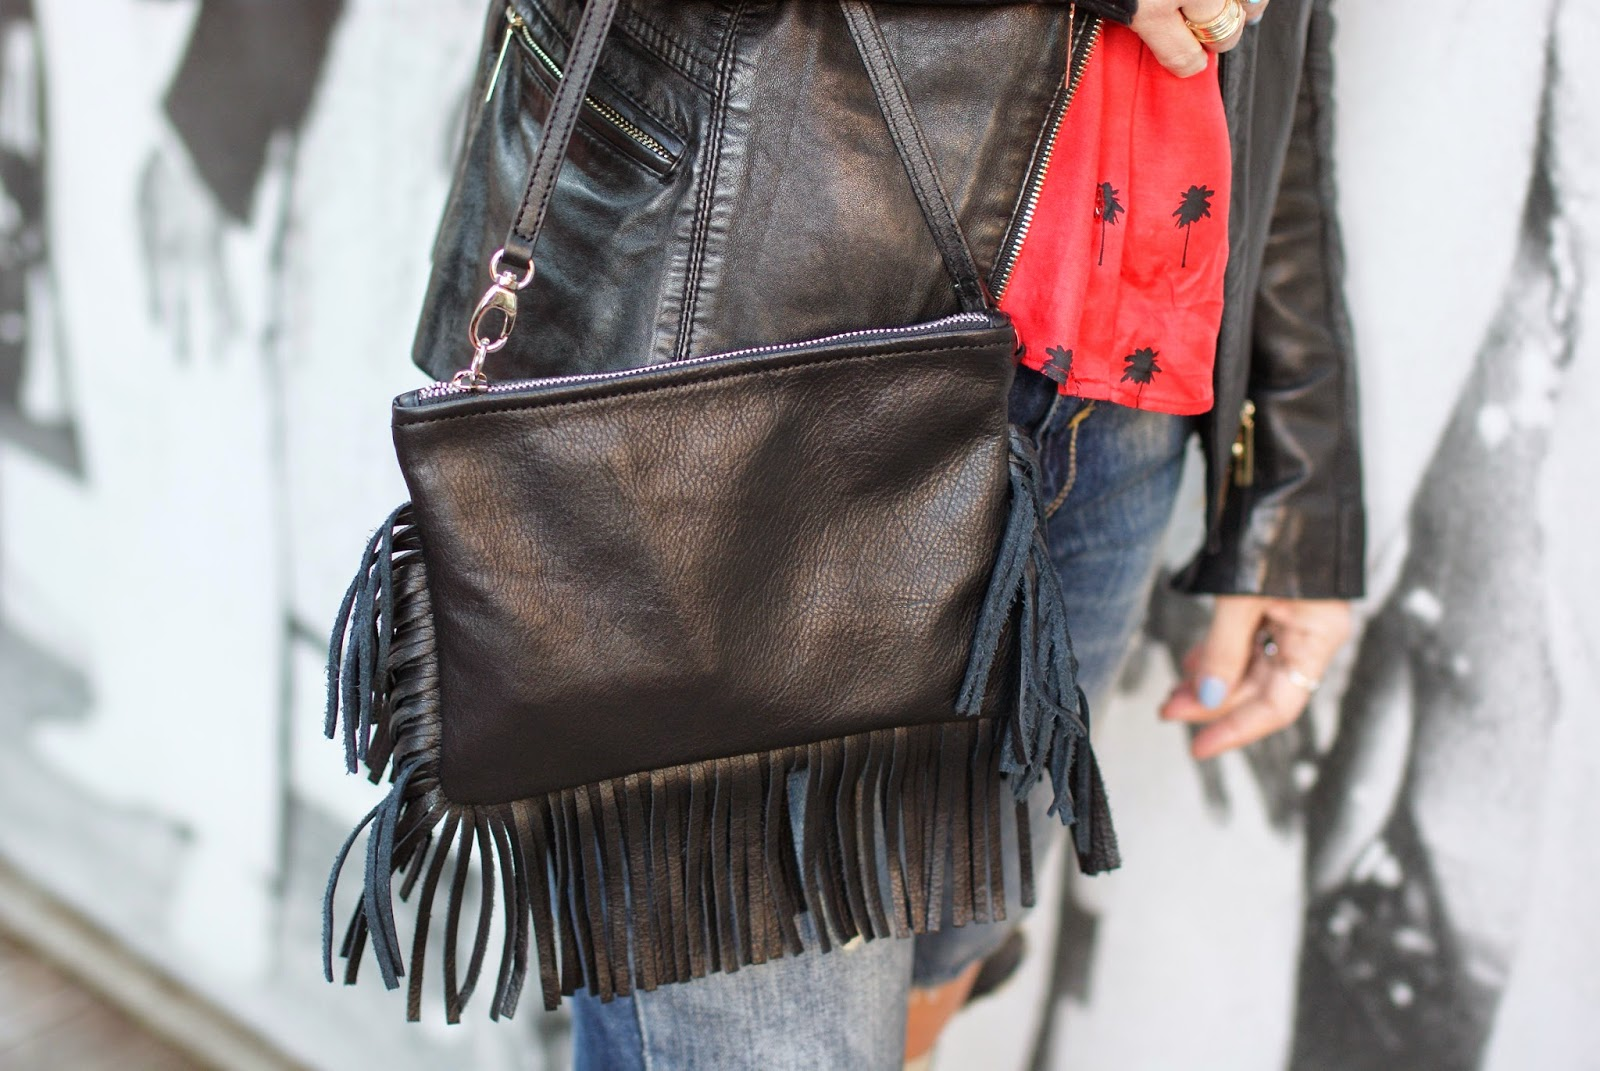 Fringed clutch, Carla G borsa frange, Fashion and Cookies, fashion blogger